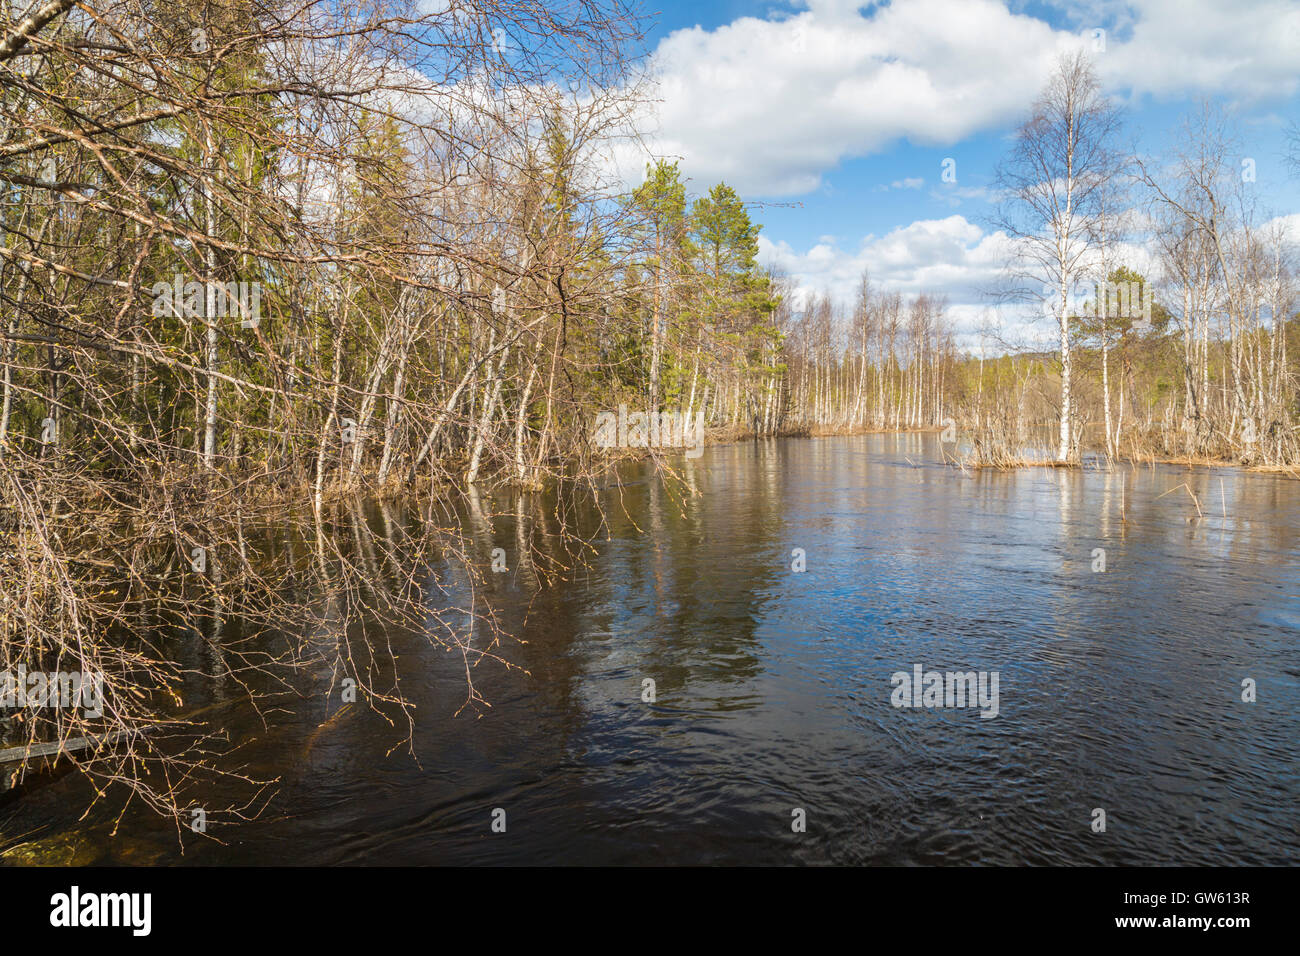 Creek with high water and the trees are budding at spring time, Norrbotten, Sweden - Stock Image